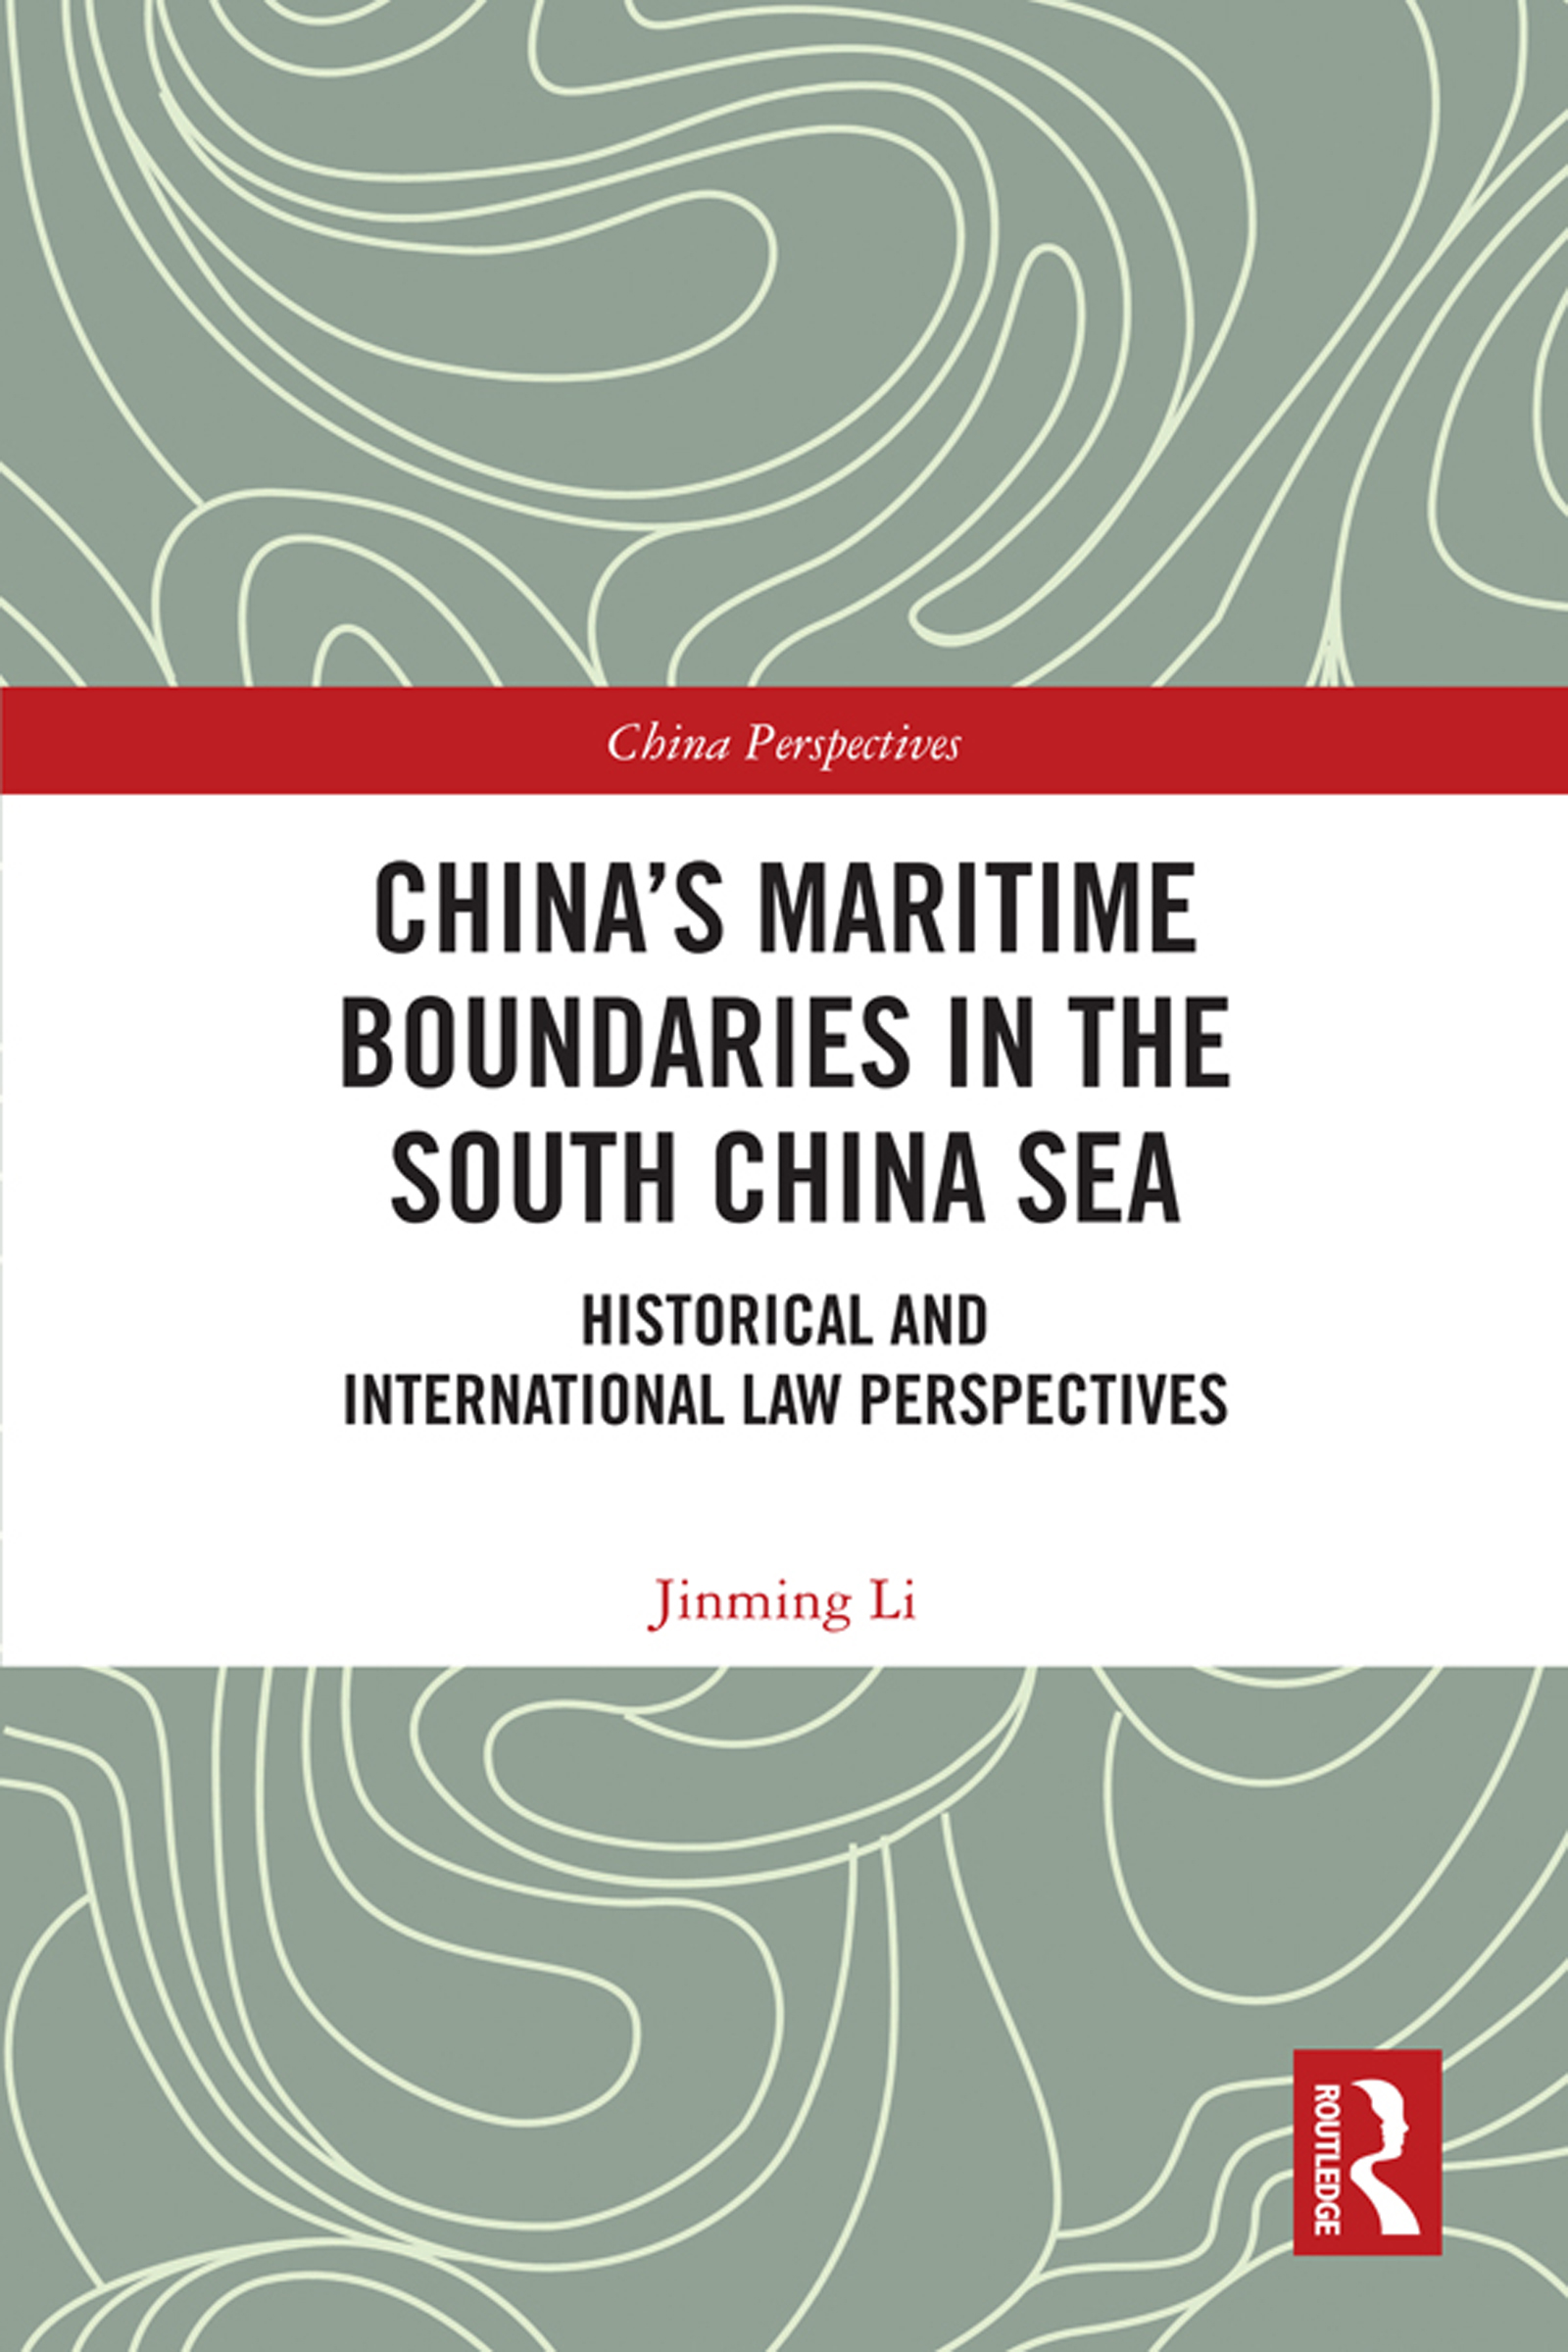 Geographical overview of China's maritime boundaries in the South China Sea